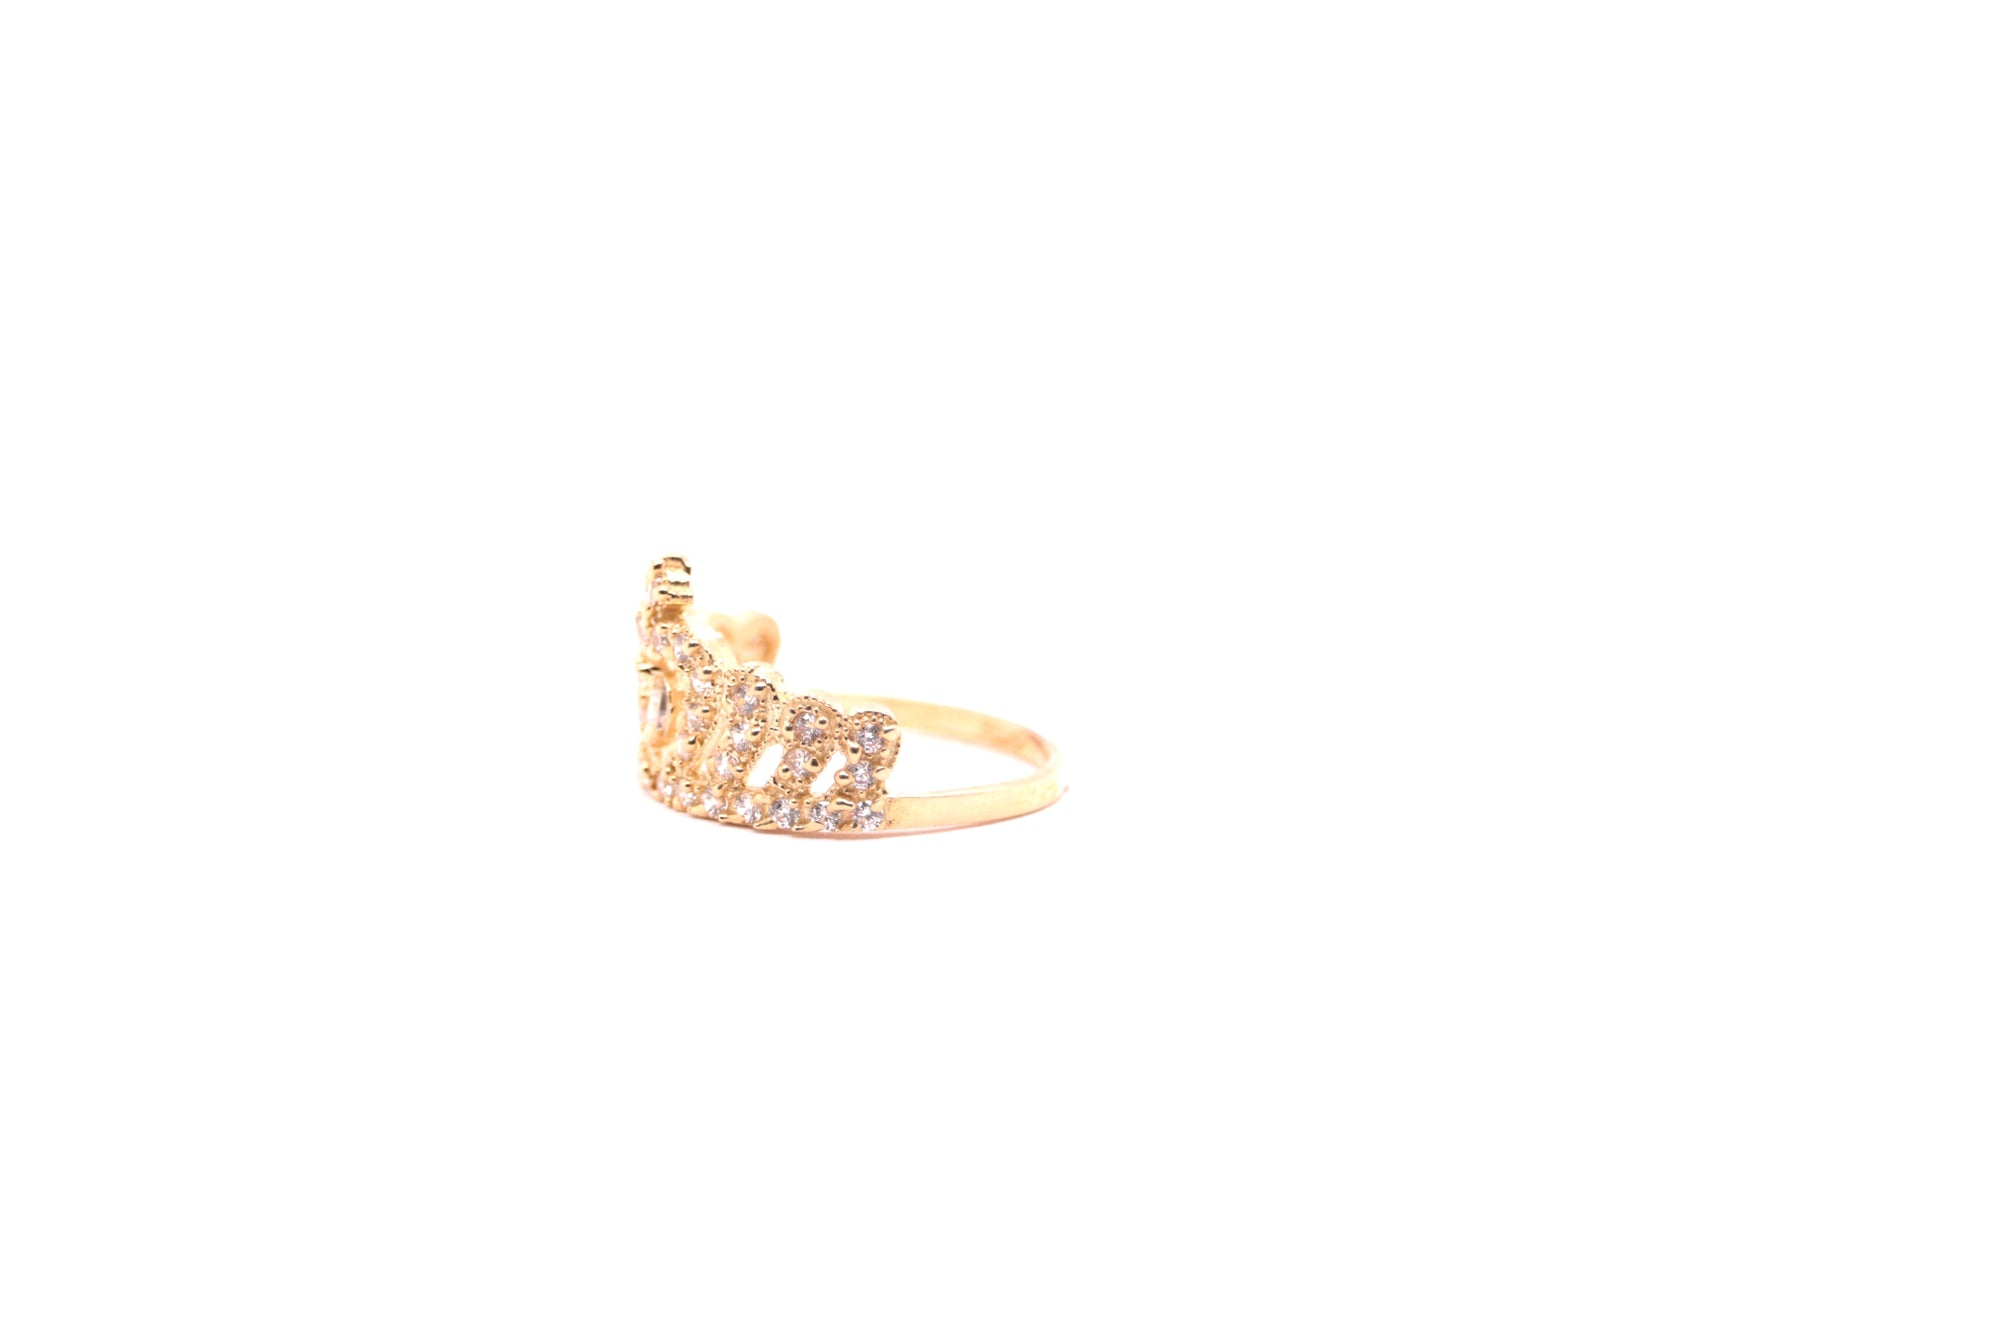 Real 10K Solid Yellow Gold Women's Crown Style Ring With CZ